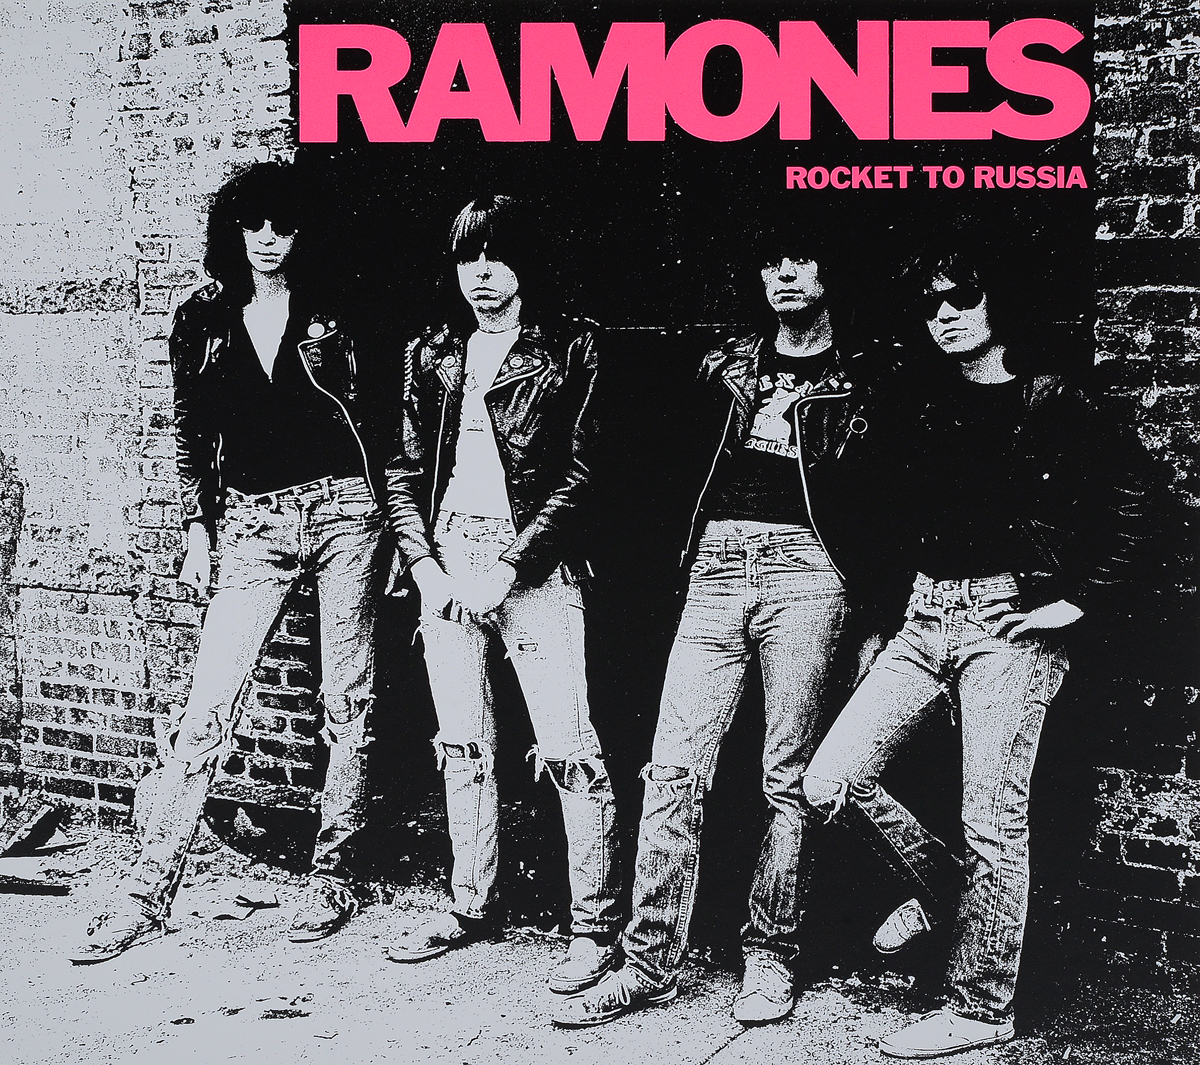 The Ramones Ramones. Rocket To Russia (40th Anniversary Deluxe Edition) (3 CD + LP) scorpions – tokyo tapes 50th anniversary deluxe edition 2 lp 2 cd